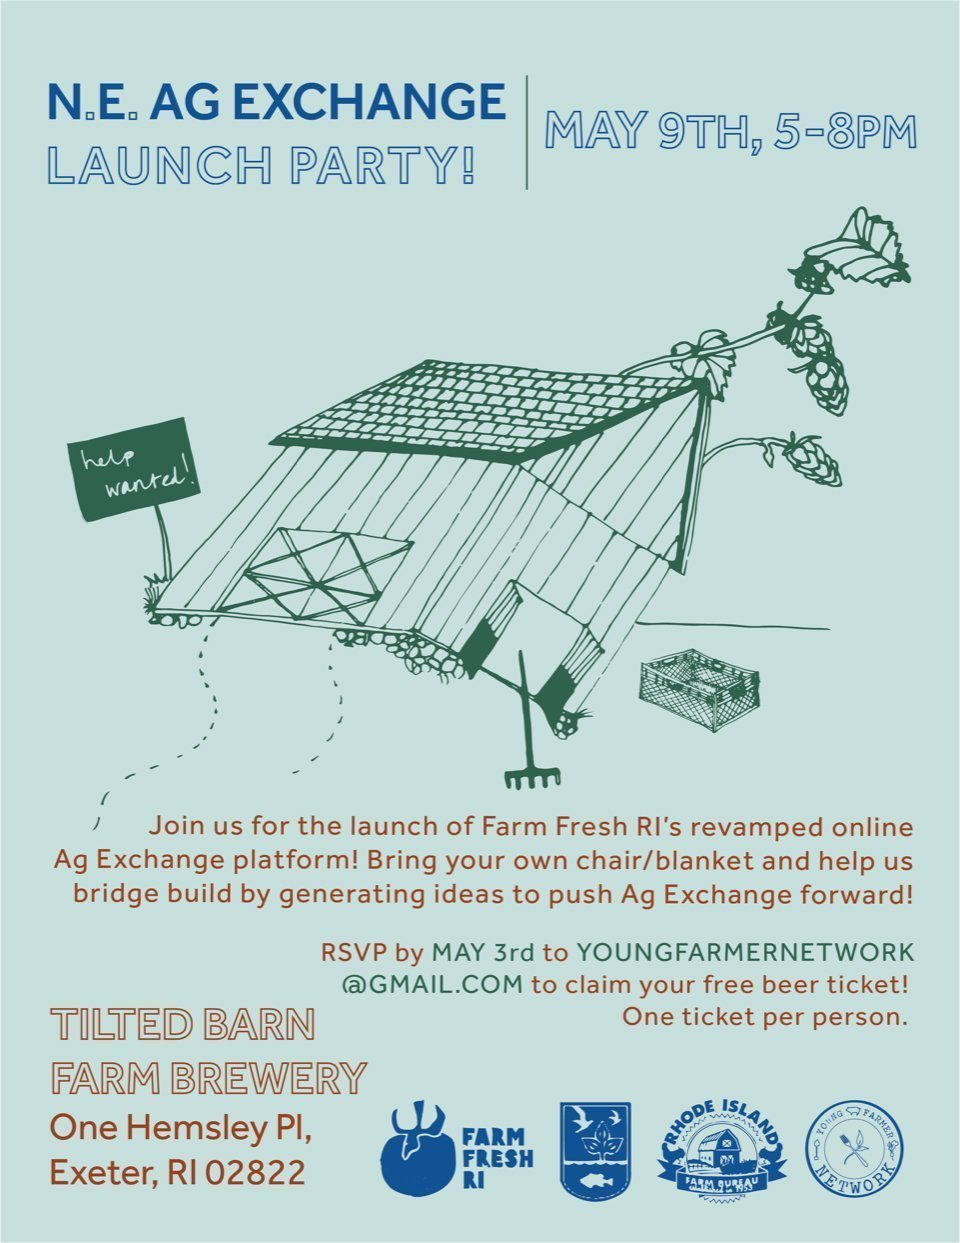 NE Ag Exchange Launch Party